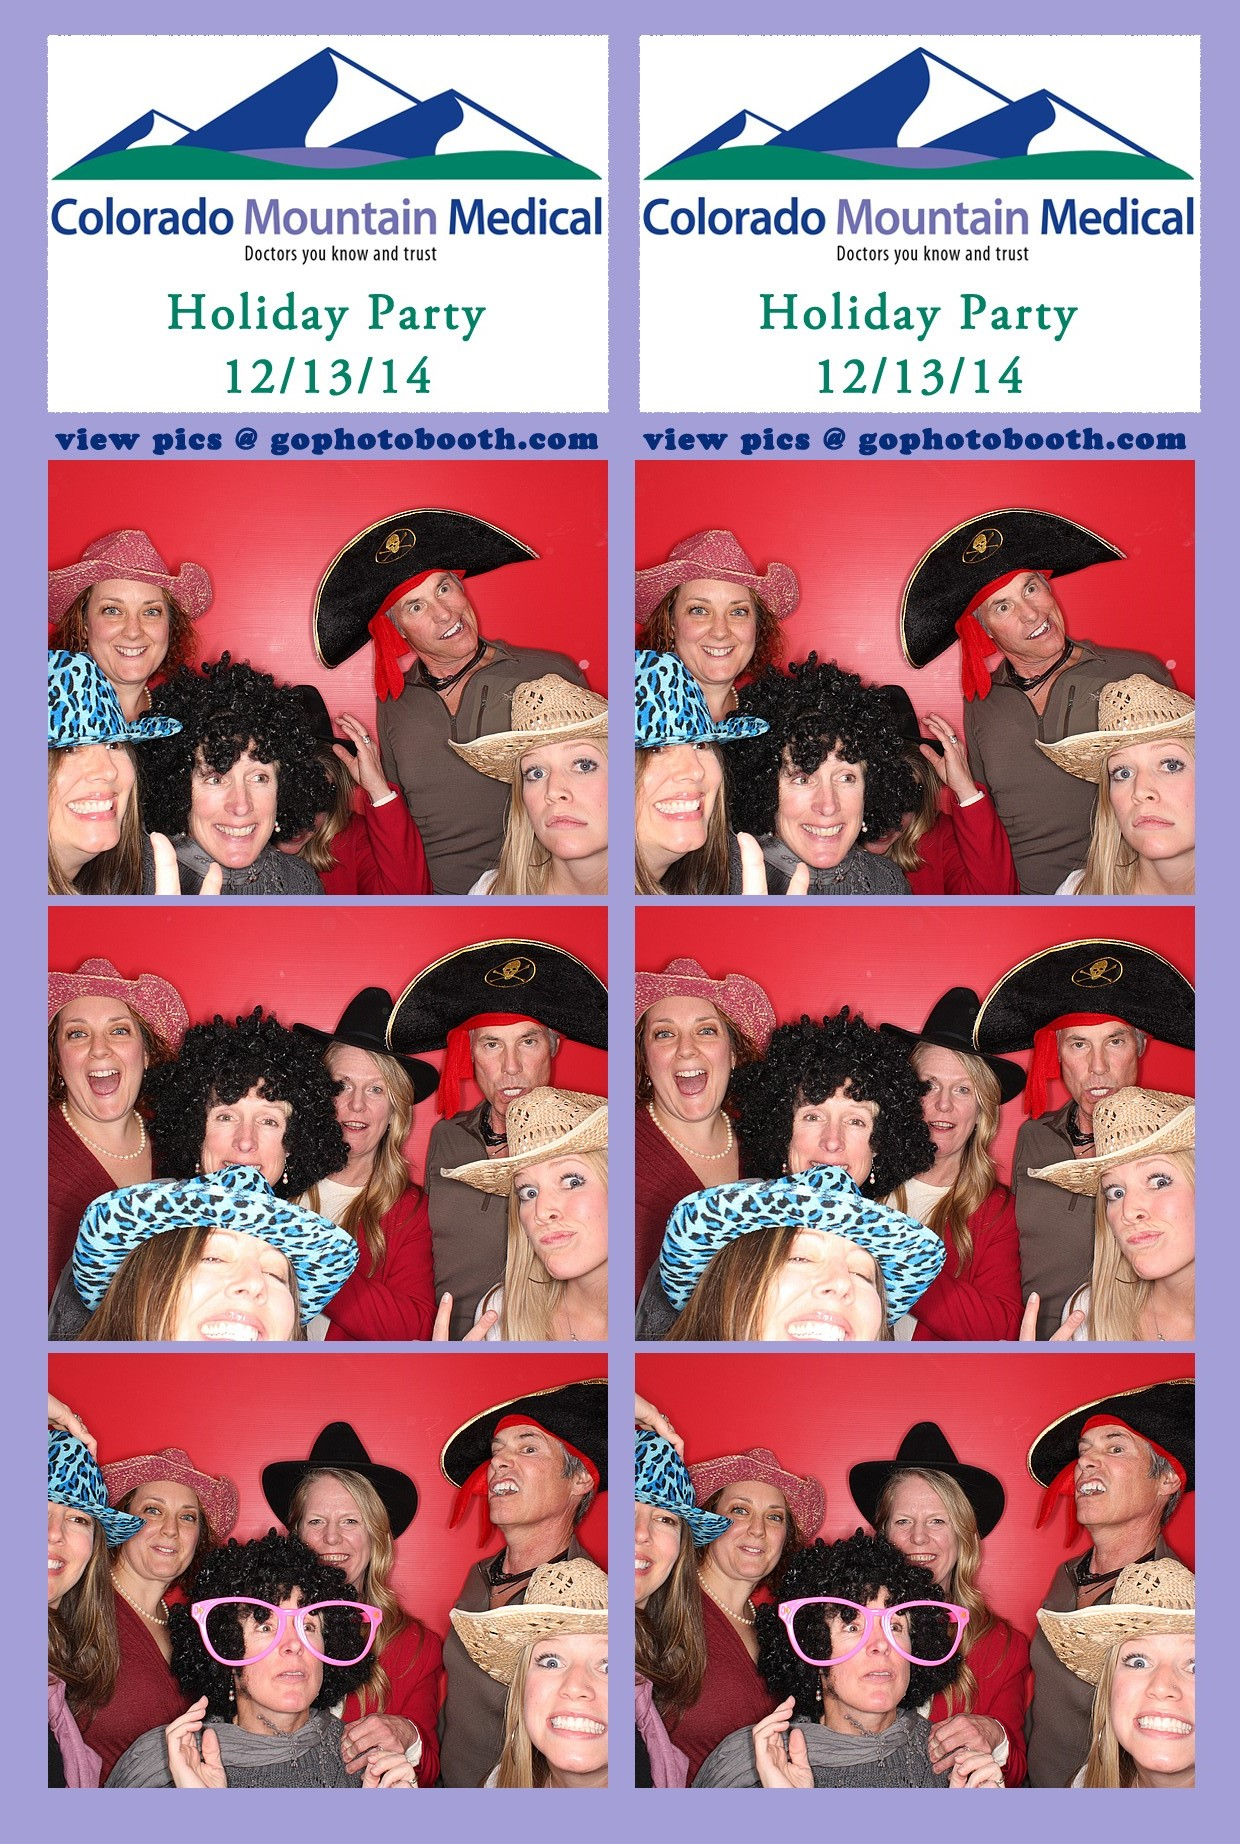 CMM Holiday Employee Party 12/13/14